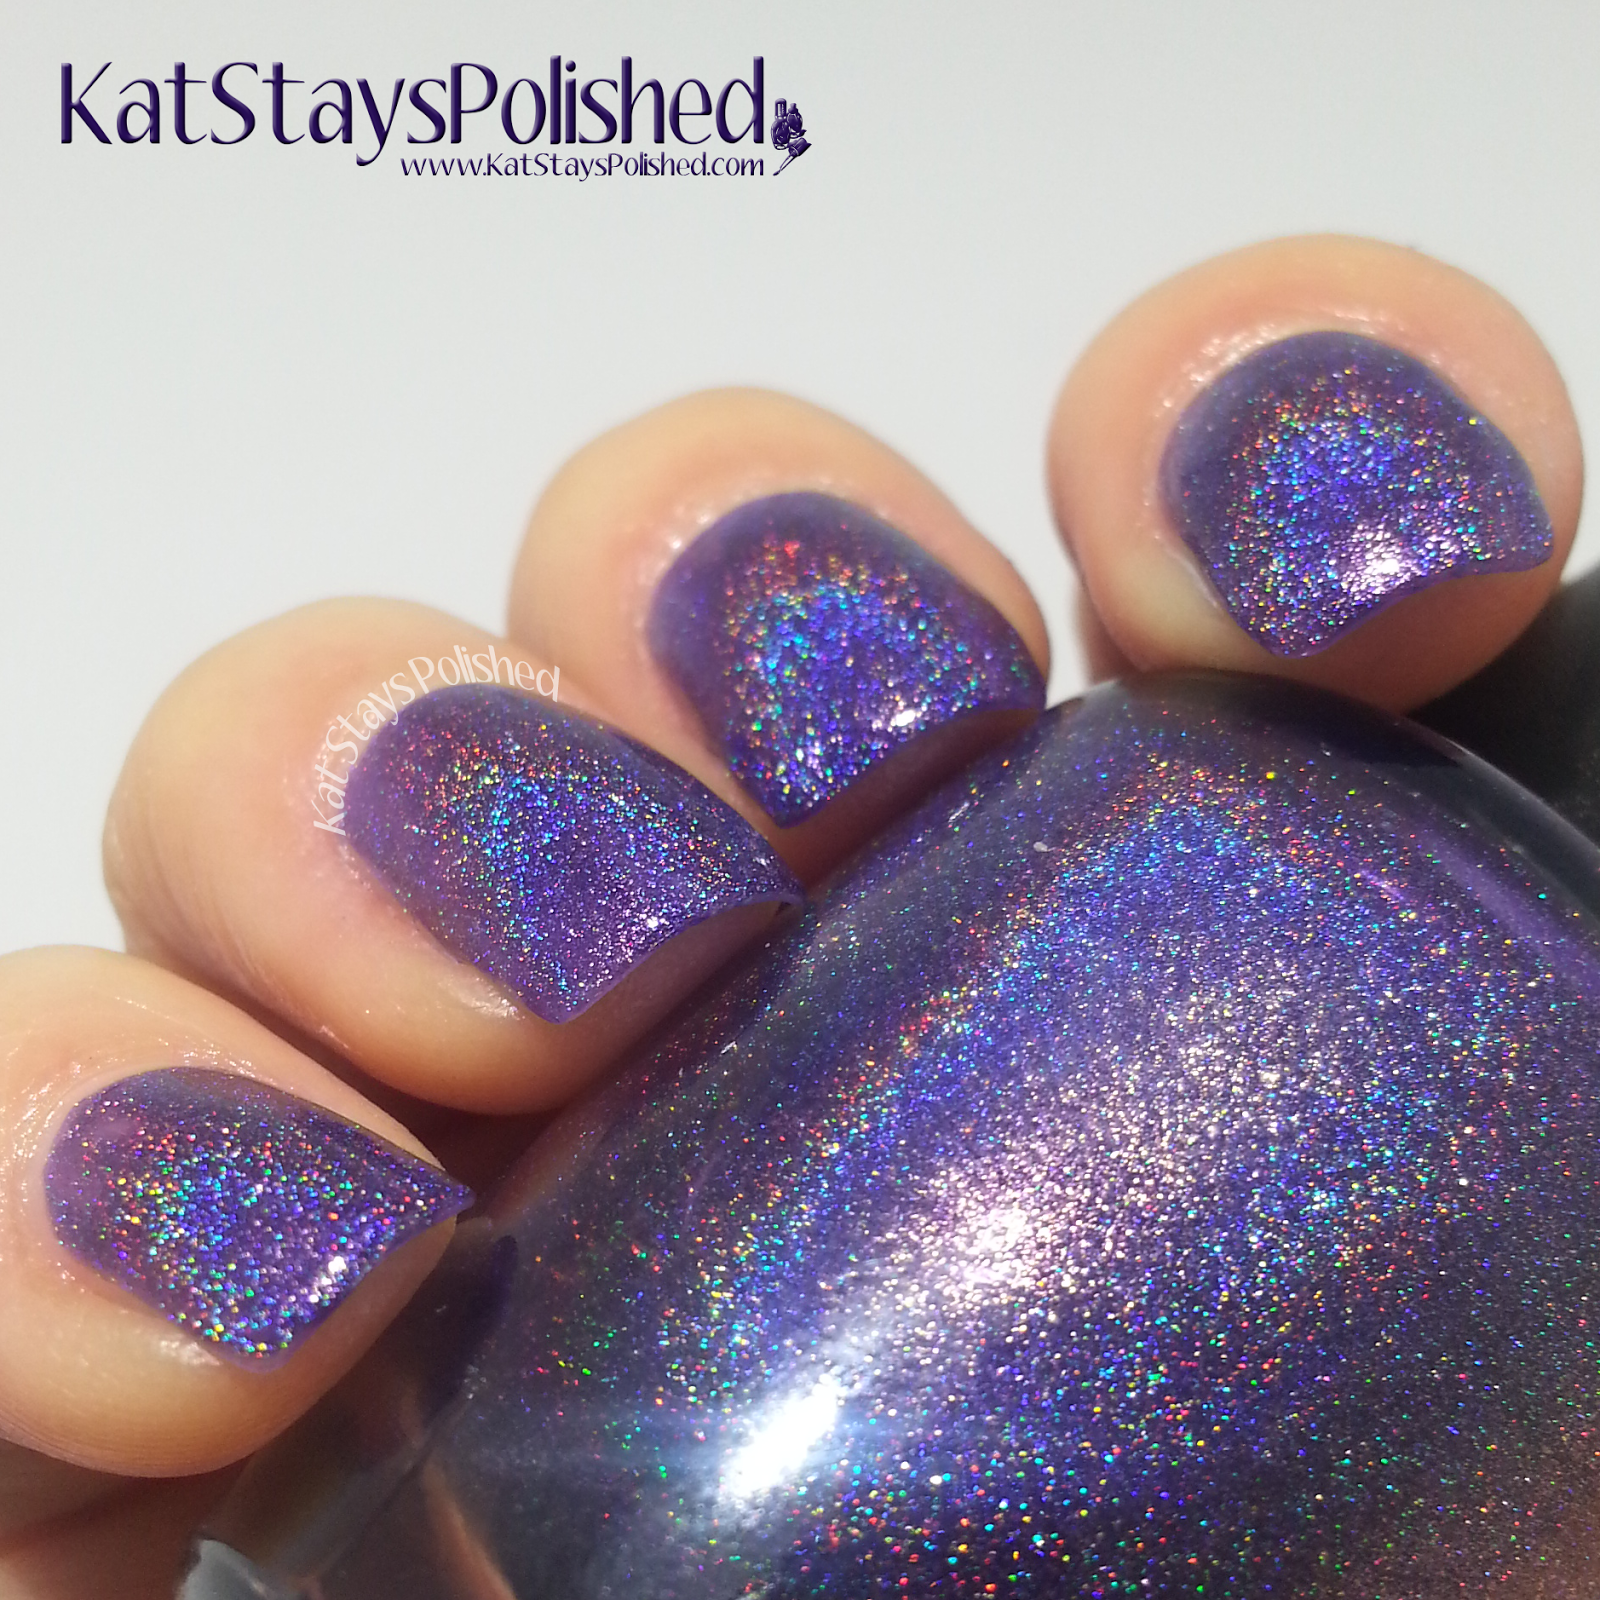 NailNation3000 - Psych-holo-gy | Kat Stays Polished